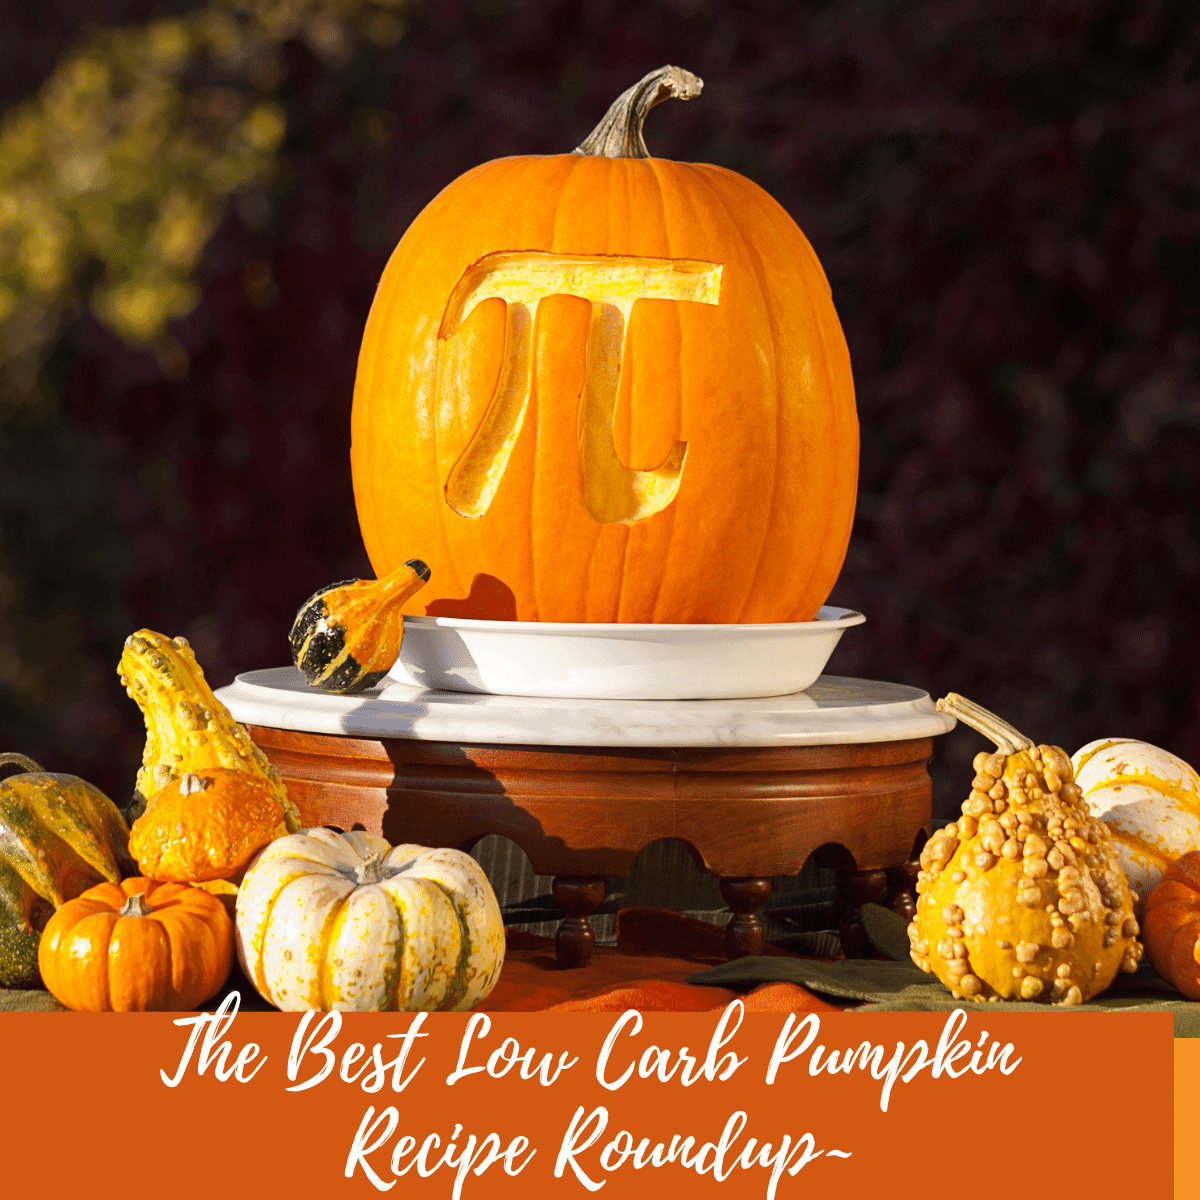 Best low carb pumpkin recipes roundup FI